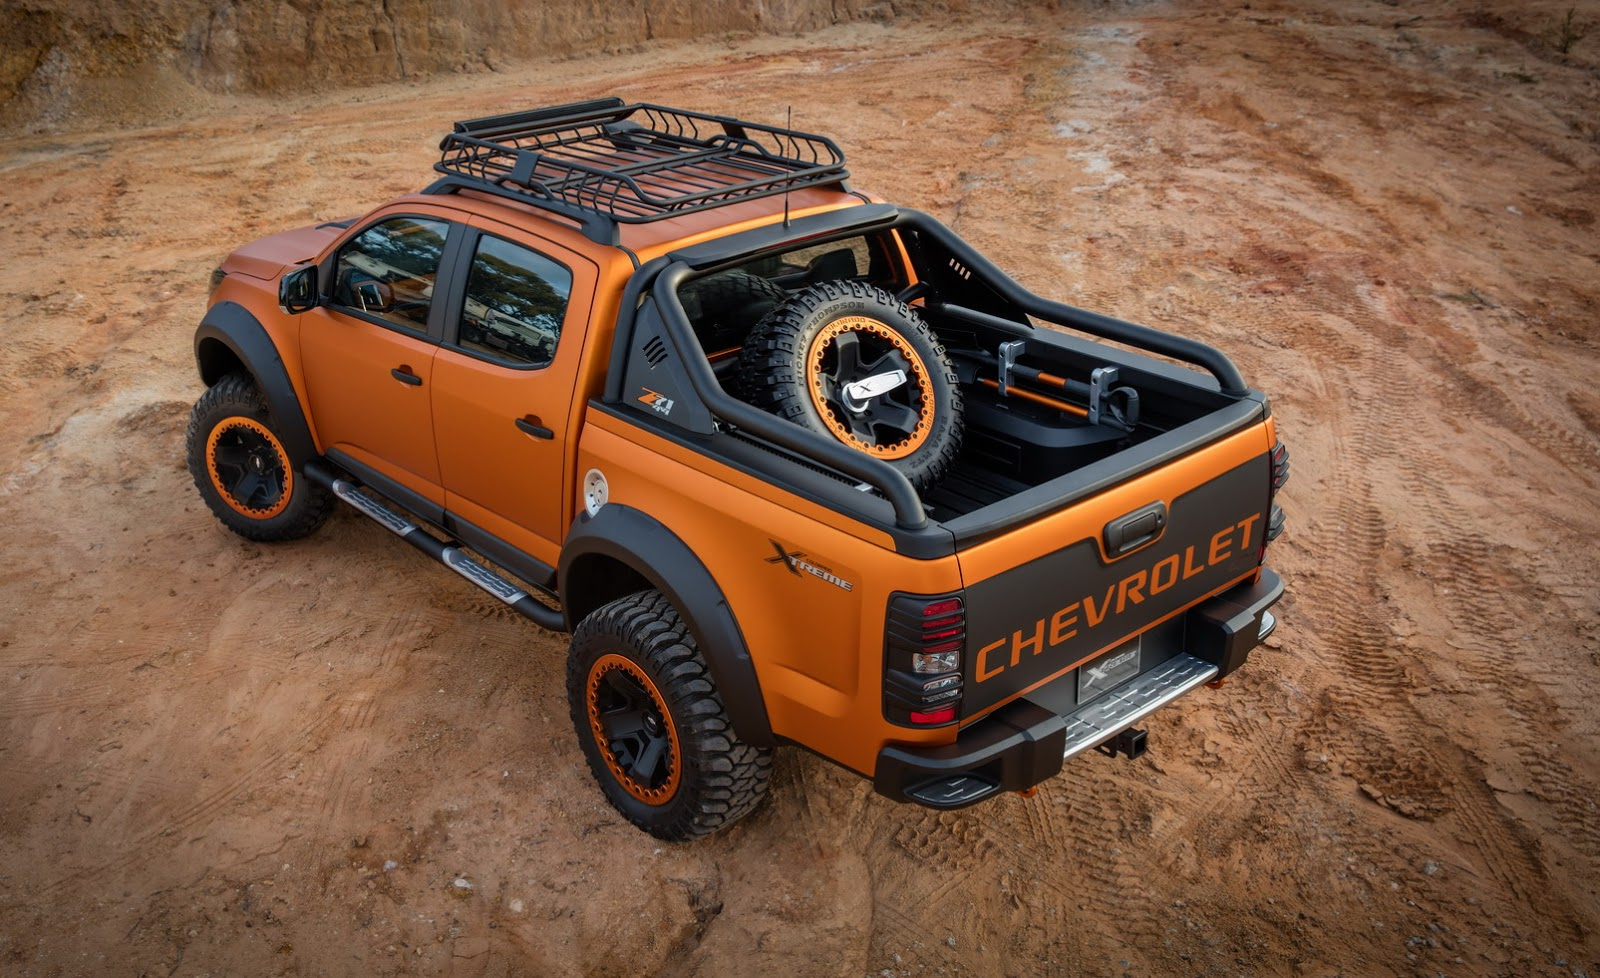 Chevrolet Colorado Xtreme Study Previews The Global Model's Facelift - carscoops.com